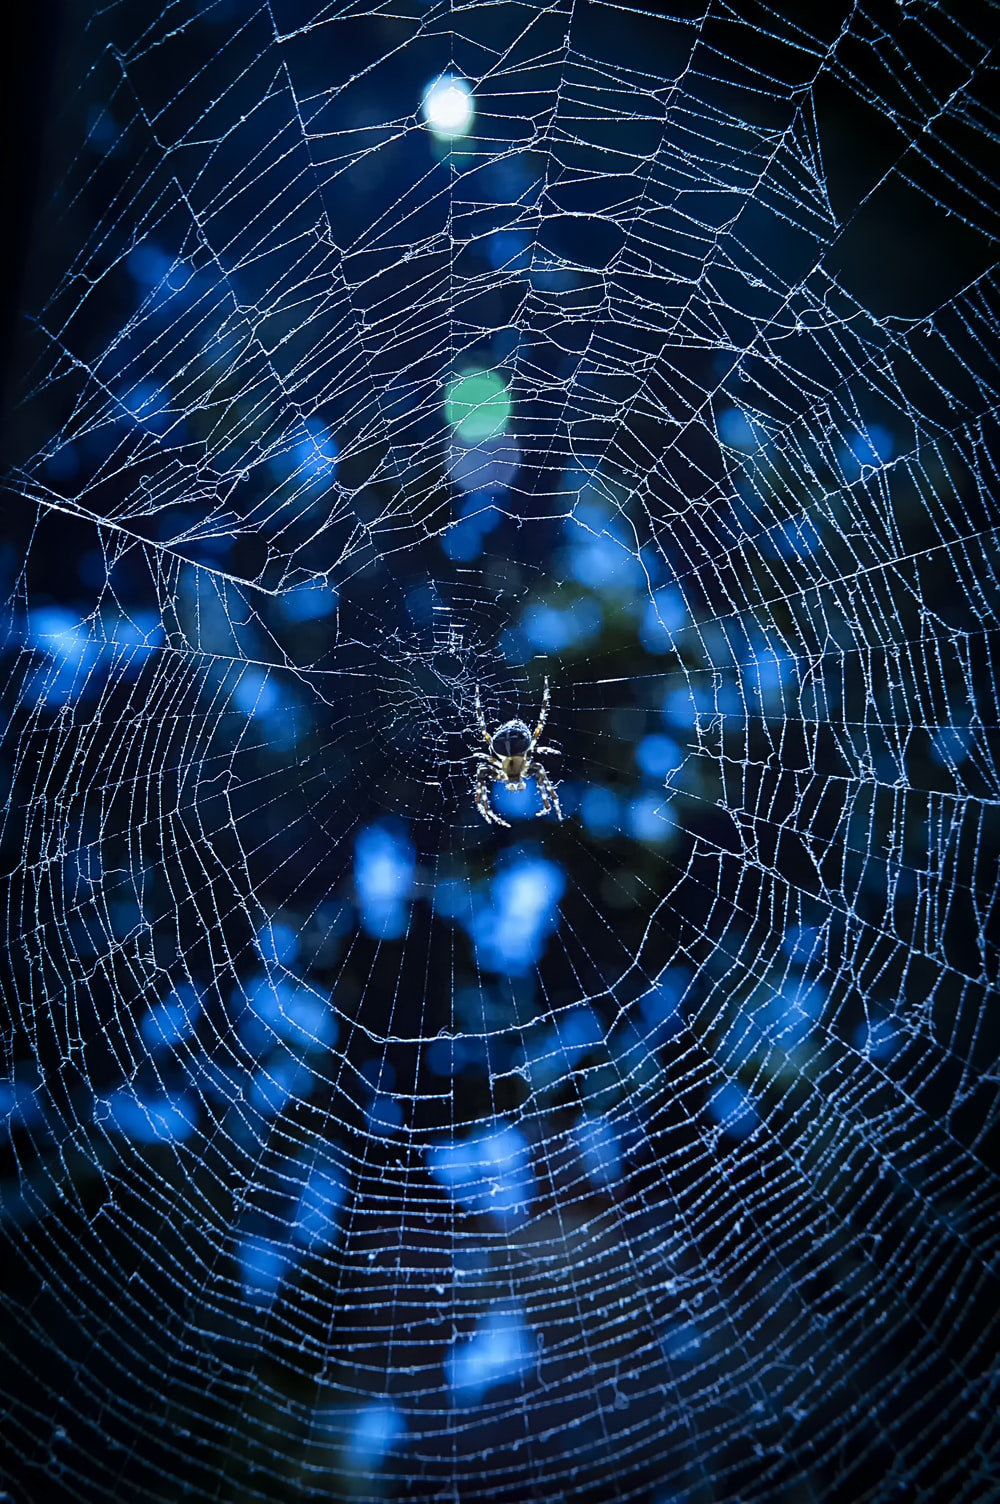 shallow focus photo of gray spider